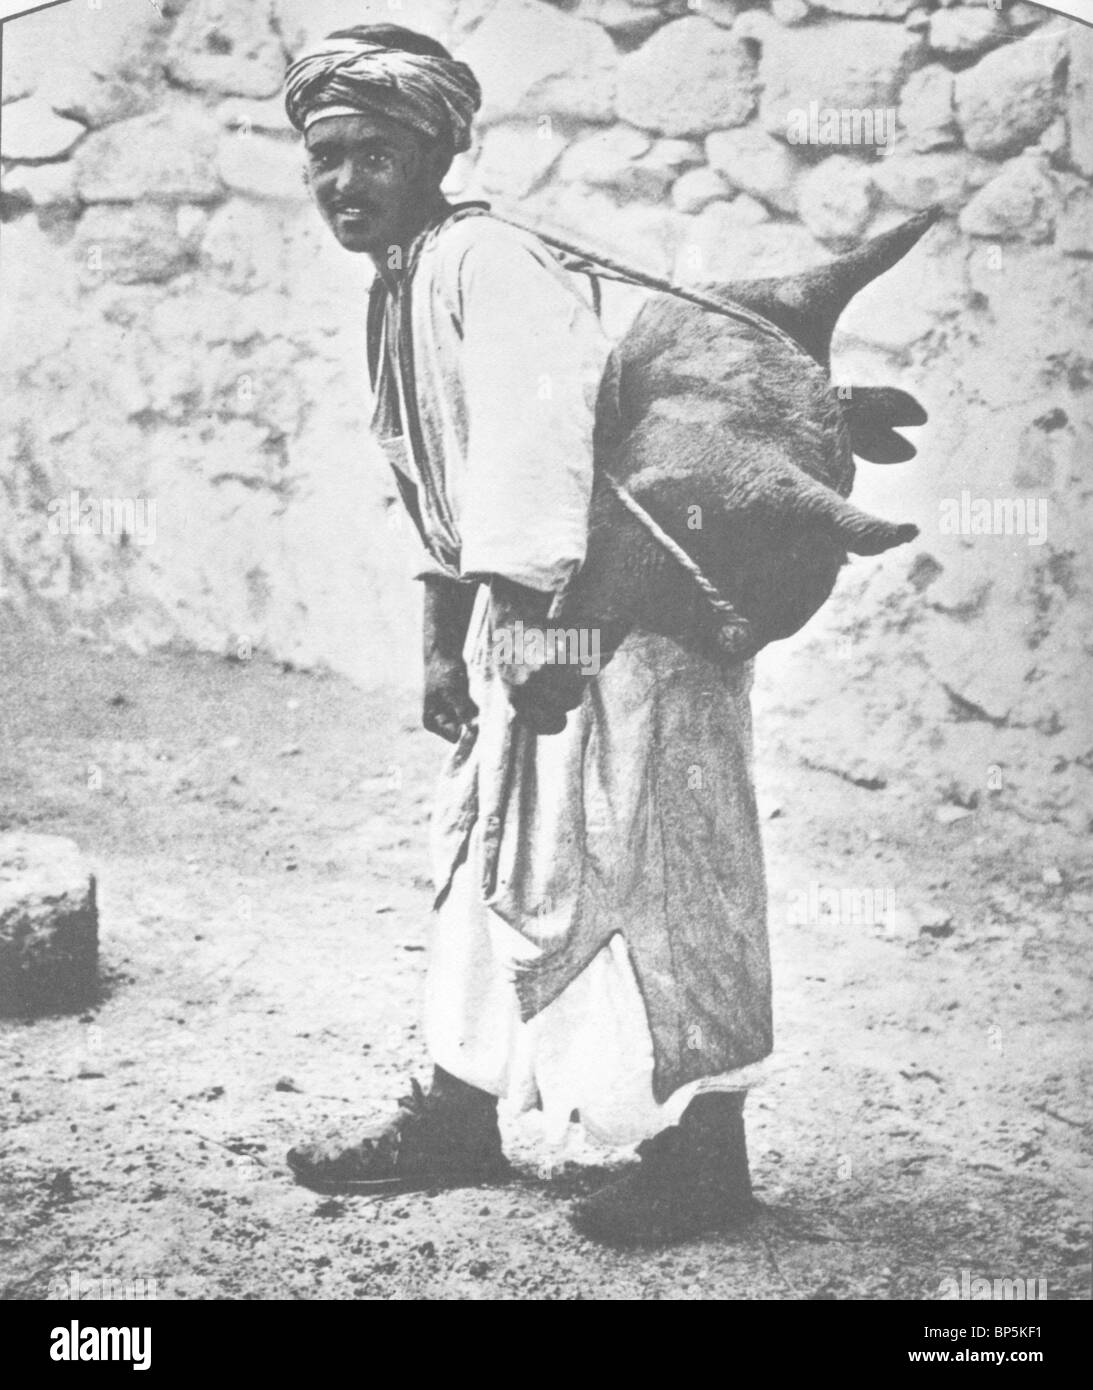 WATER CARRIER, JERUSALEM AT THE BEGINING OF THE 19TH. C. WATER IS CARRIED IN SHEEP OR GOAT SKINS FROM THE FEW WELLS - Stock Image